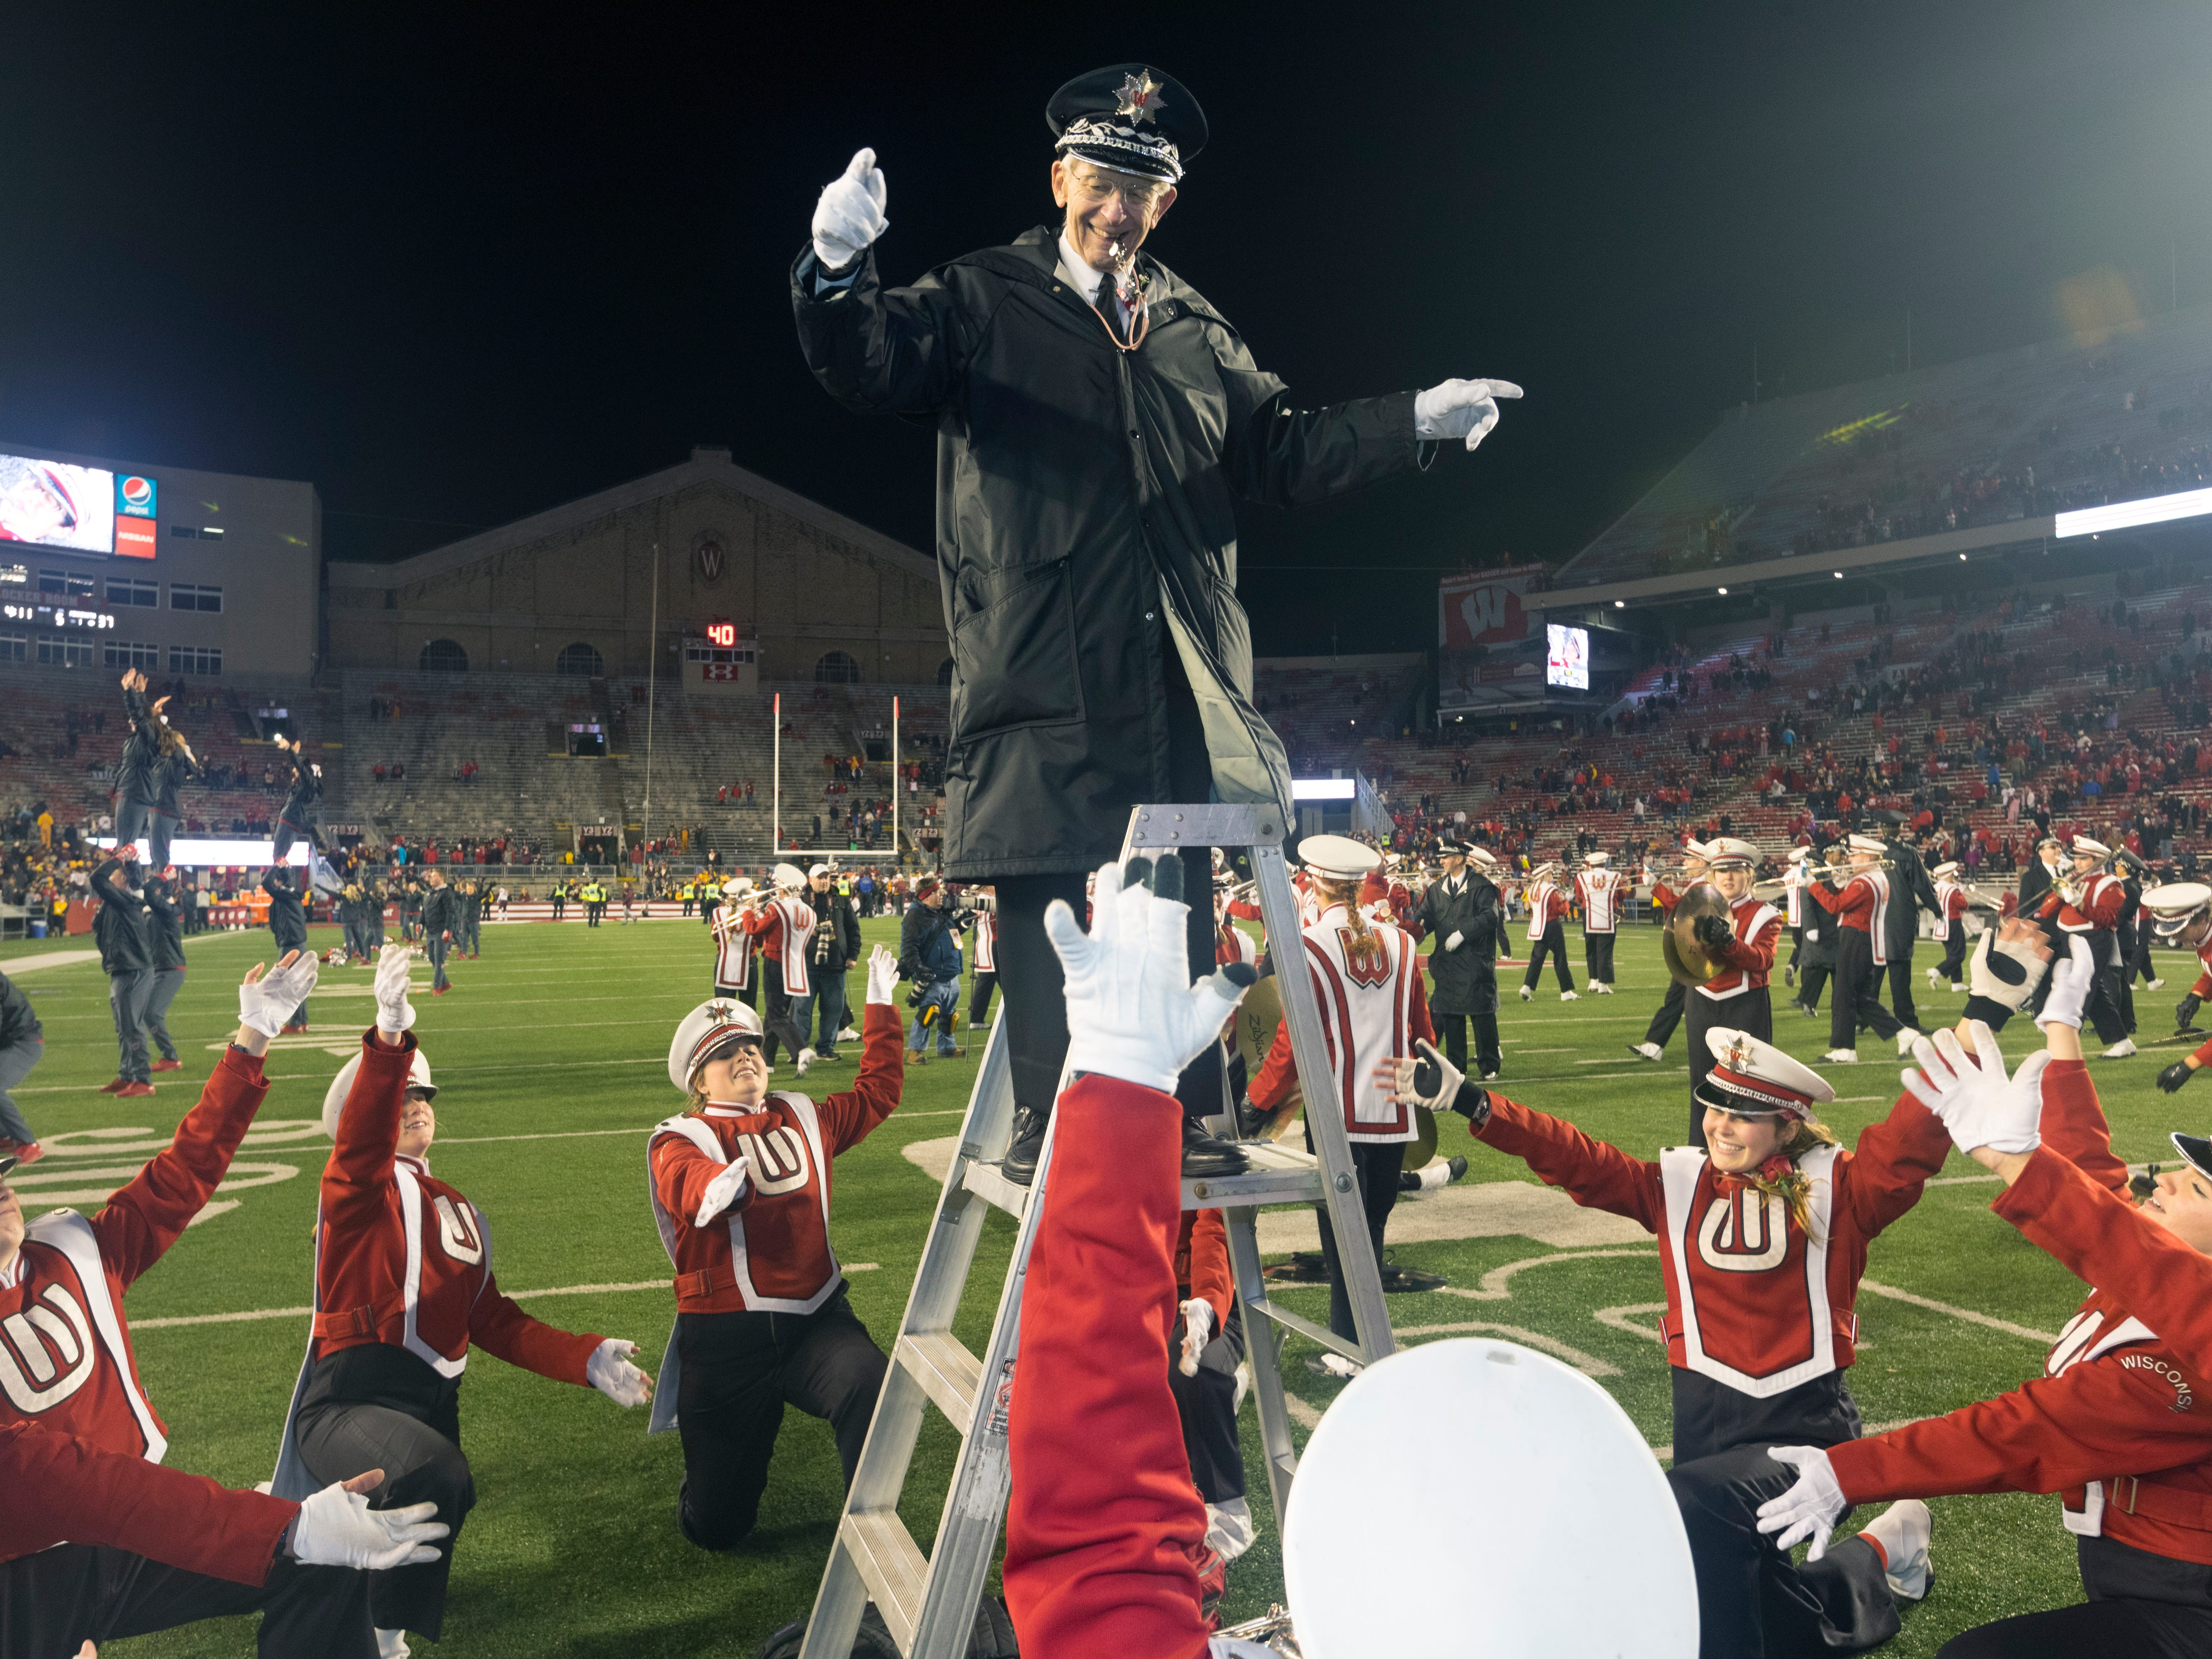 """Retiring Wisconsin band director Michael Leckrone enjoys his final """"Fifth Quarter"""" show on Saturday at Camp Randall Stadium."""